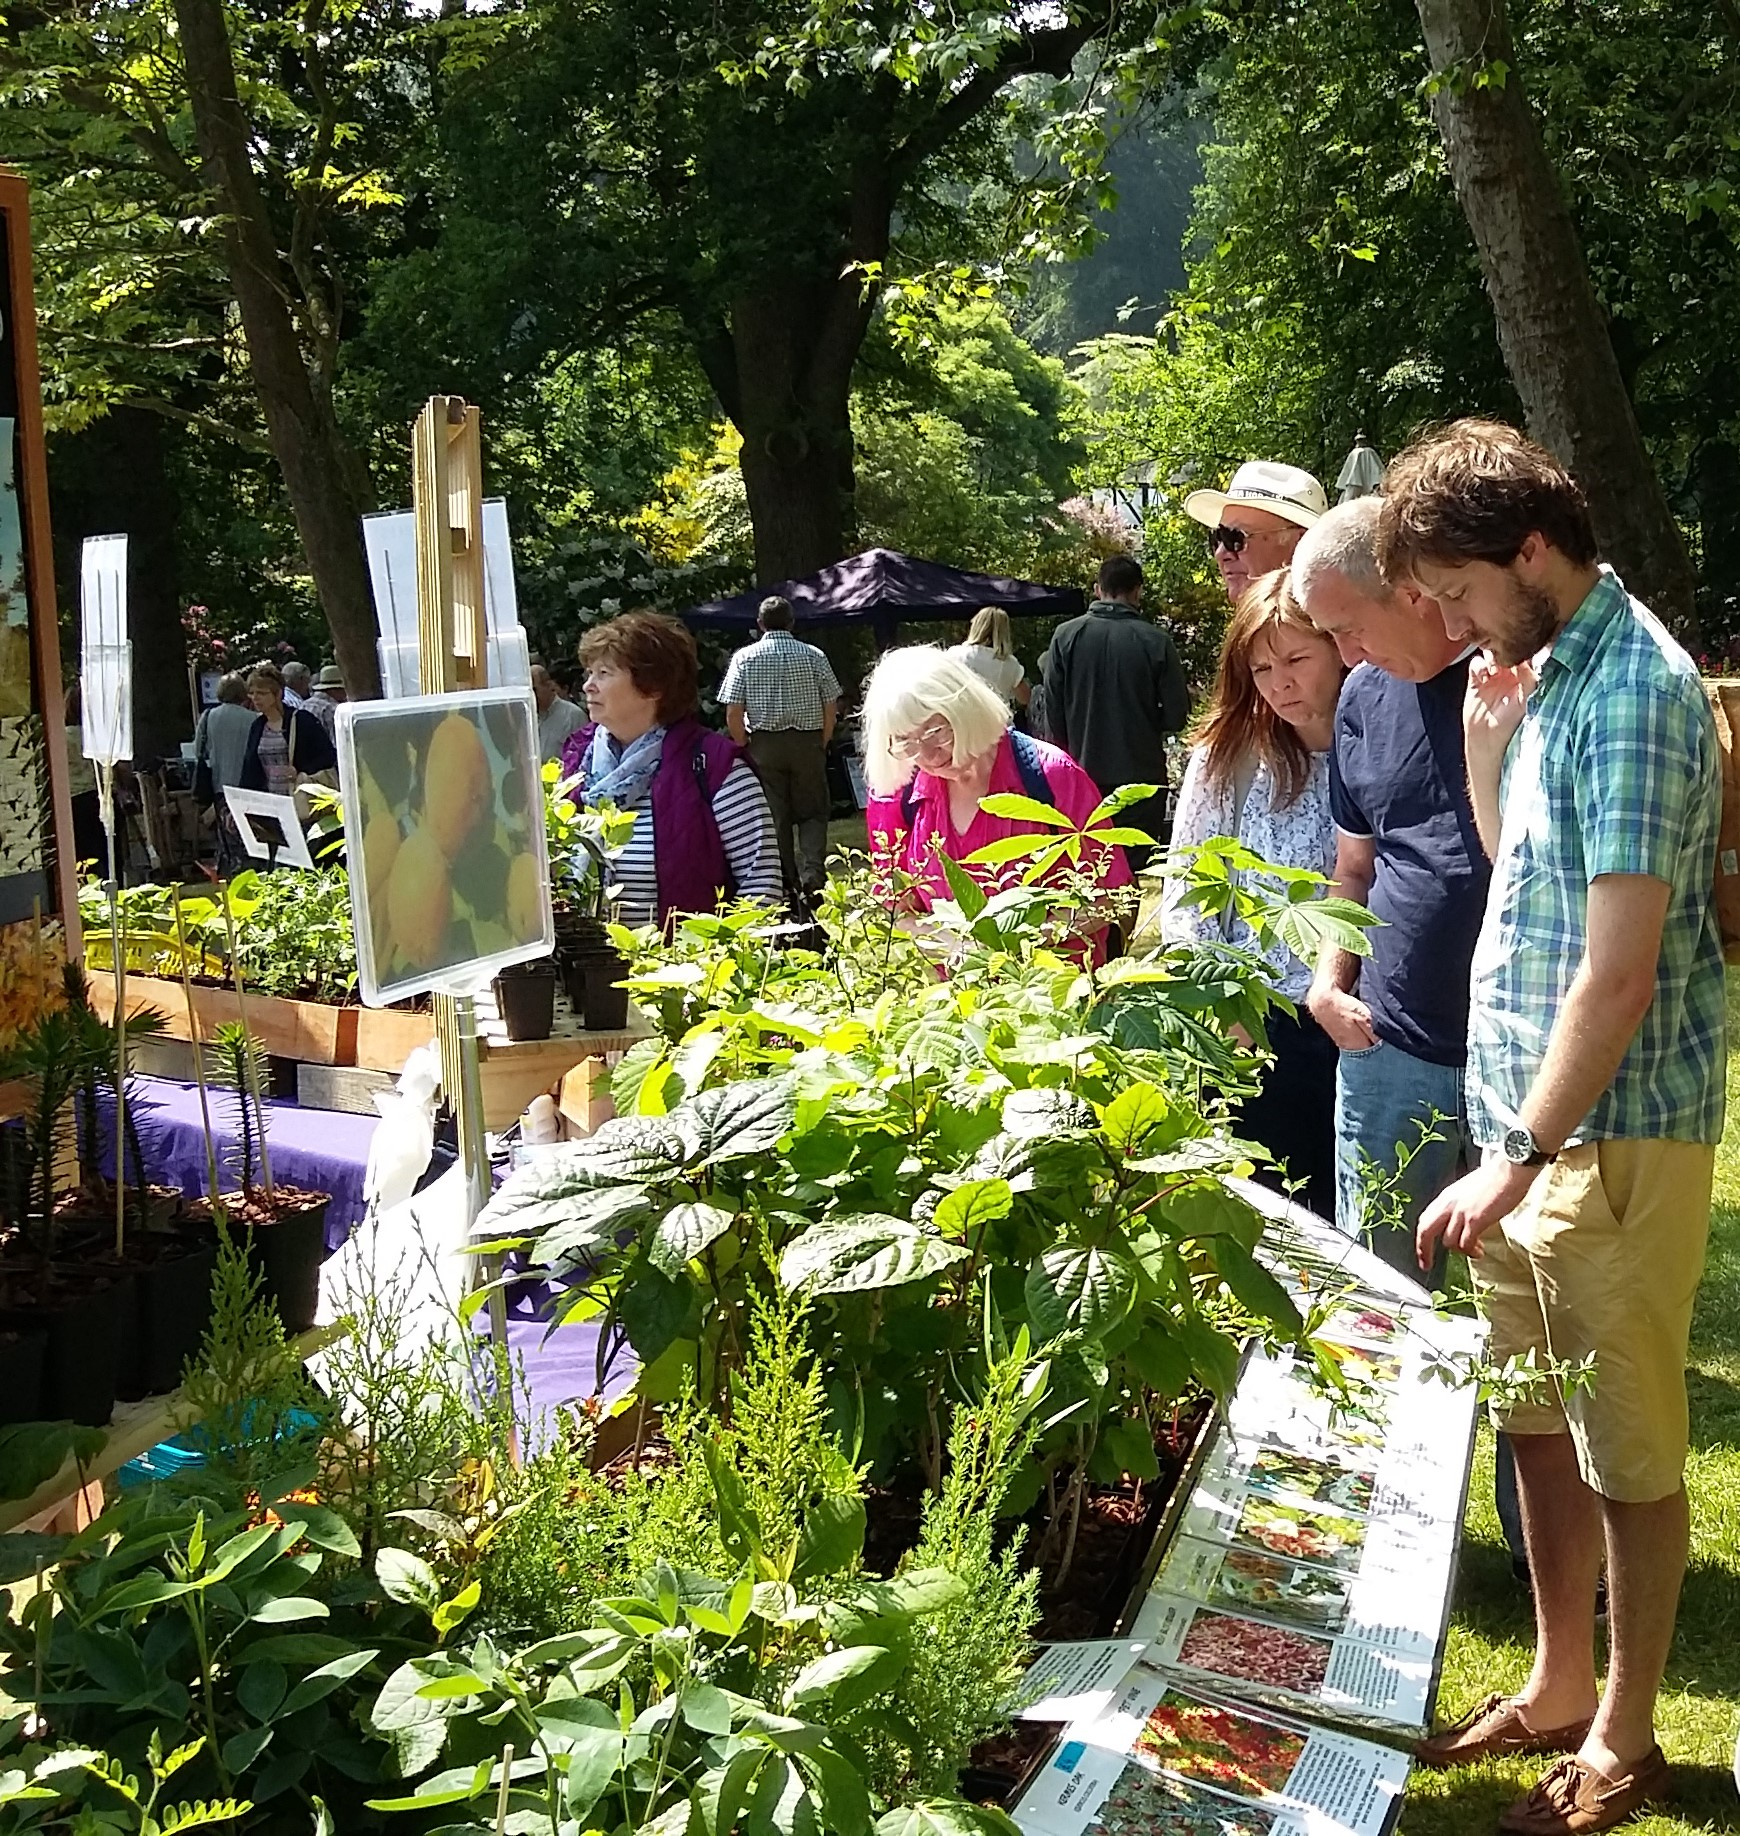 Plant Hunters' Fair at Bodenham Arboretum on Saturday 1st September